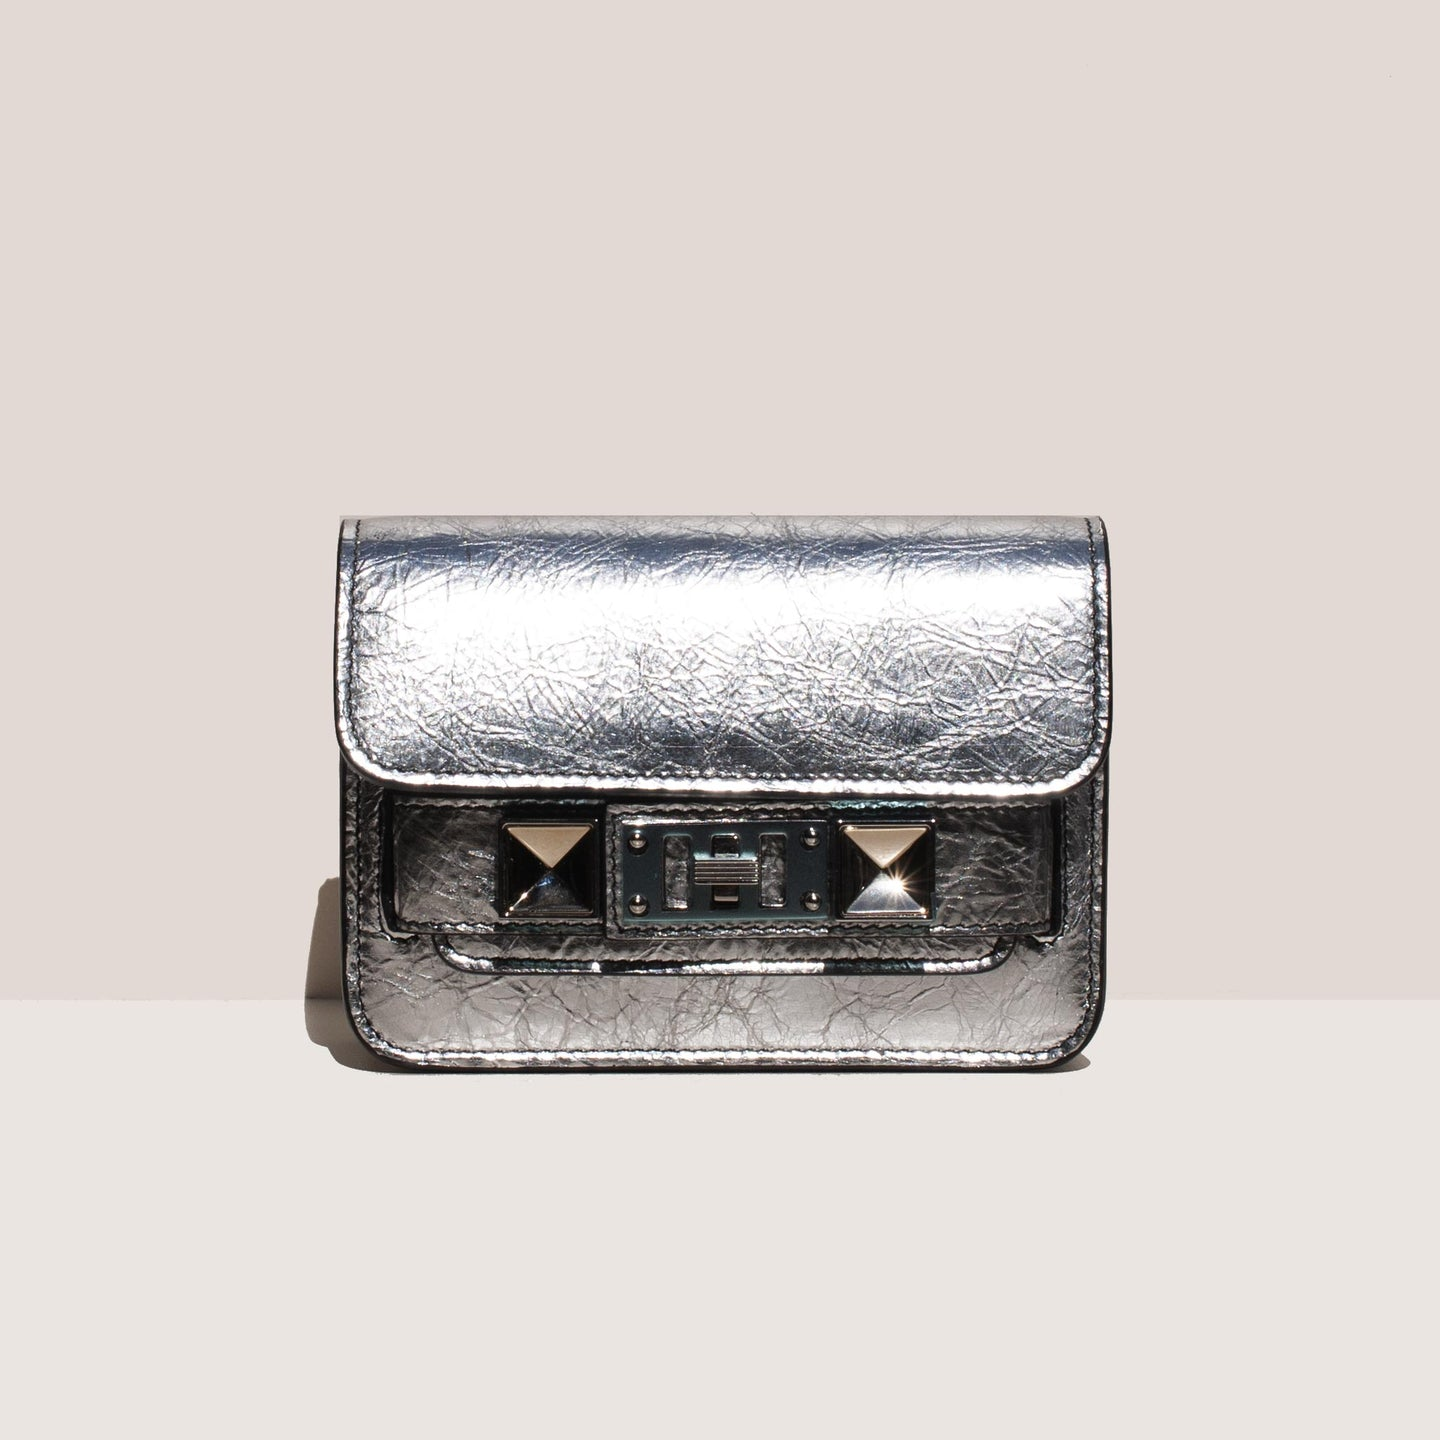 Proenza Schouler - PS11 Belt Bag, front view, available at LCD.